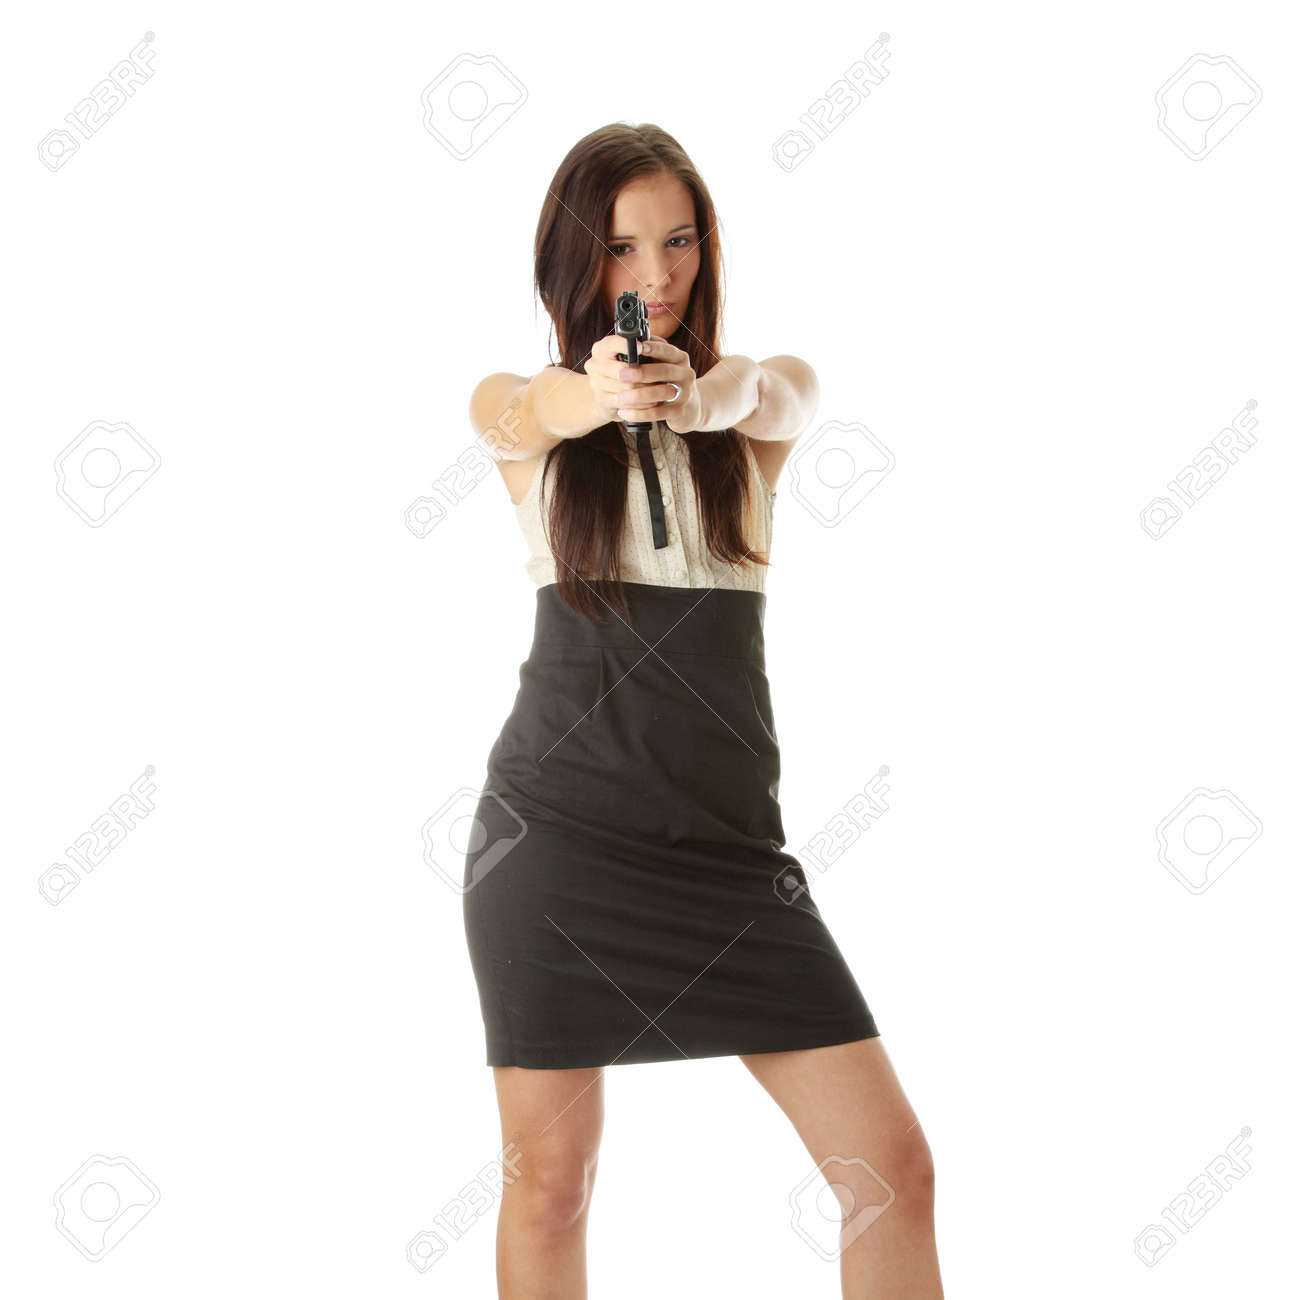 Young woman with hand gun isolated Stock Photo - 6300234